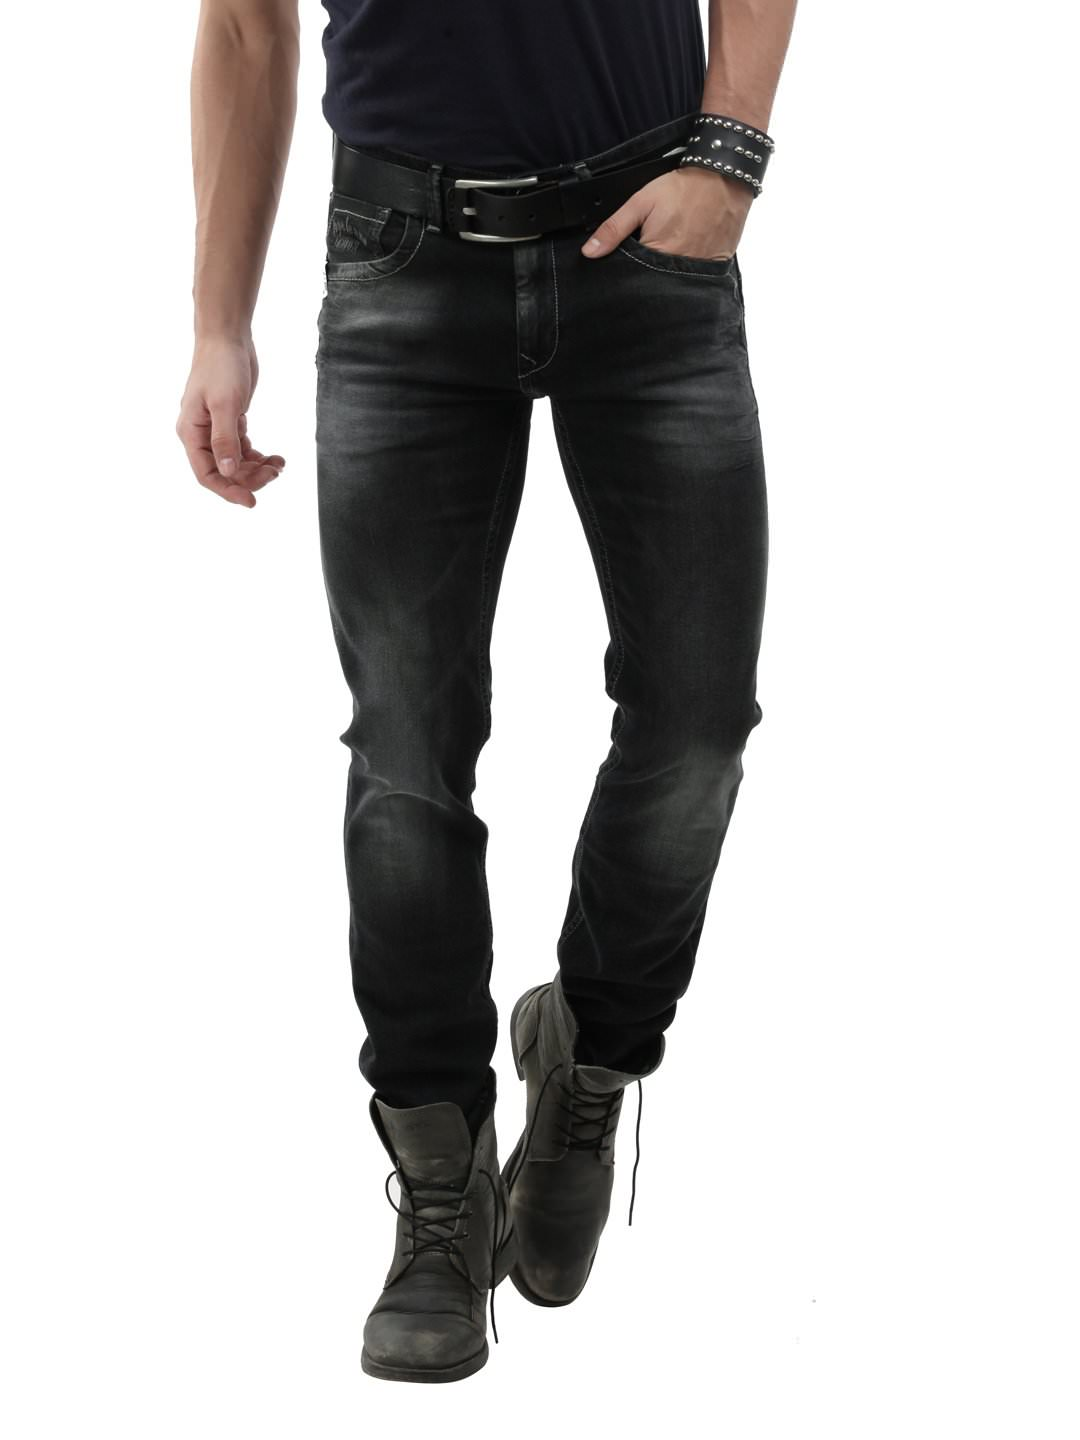 Black Guy Jeans | Jeans To